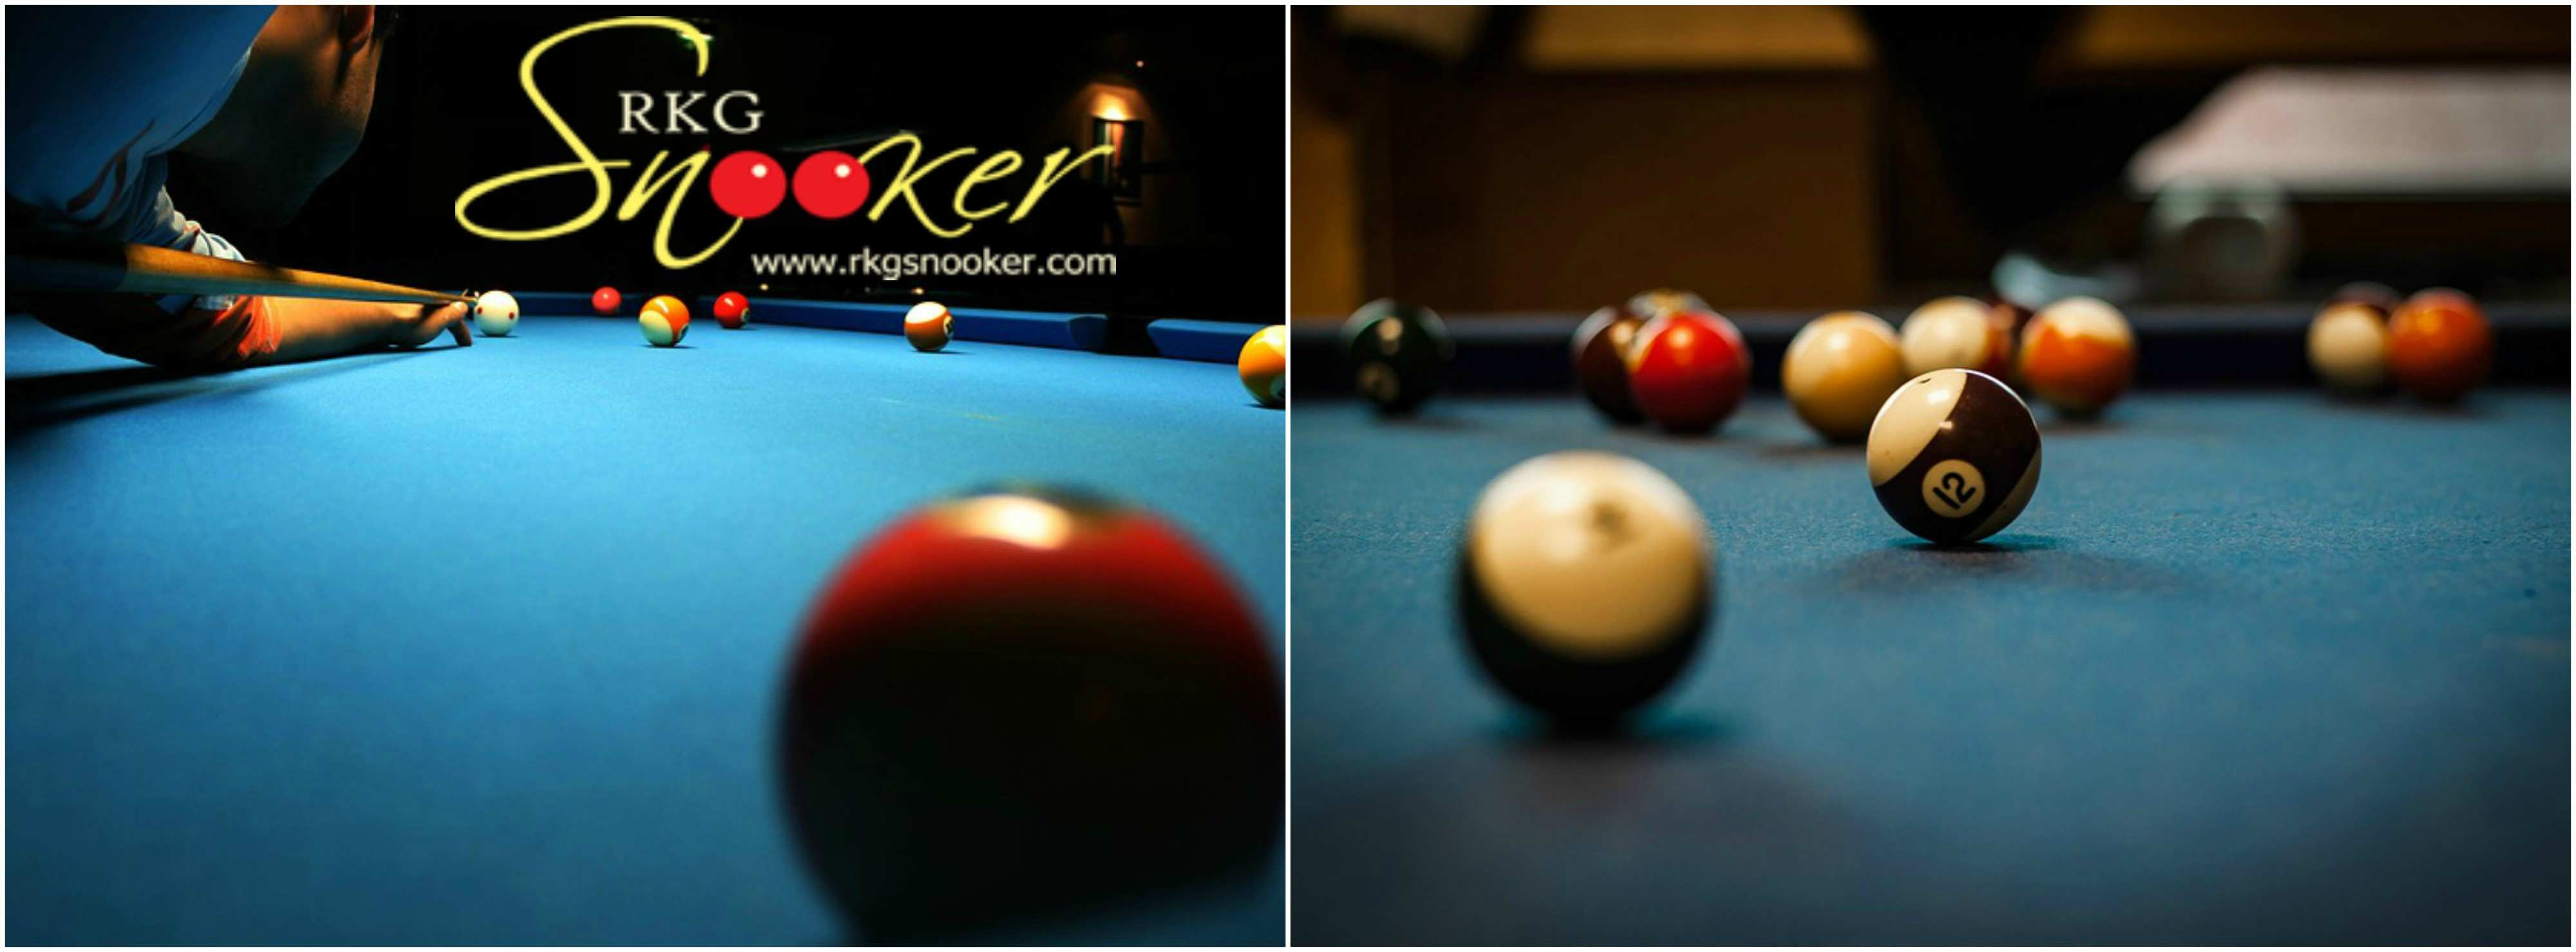 RKG Snooker: A Platform for Cue Sports